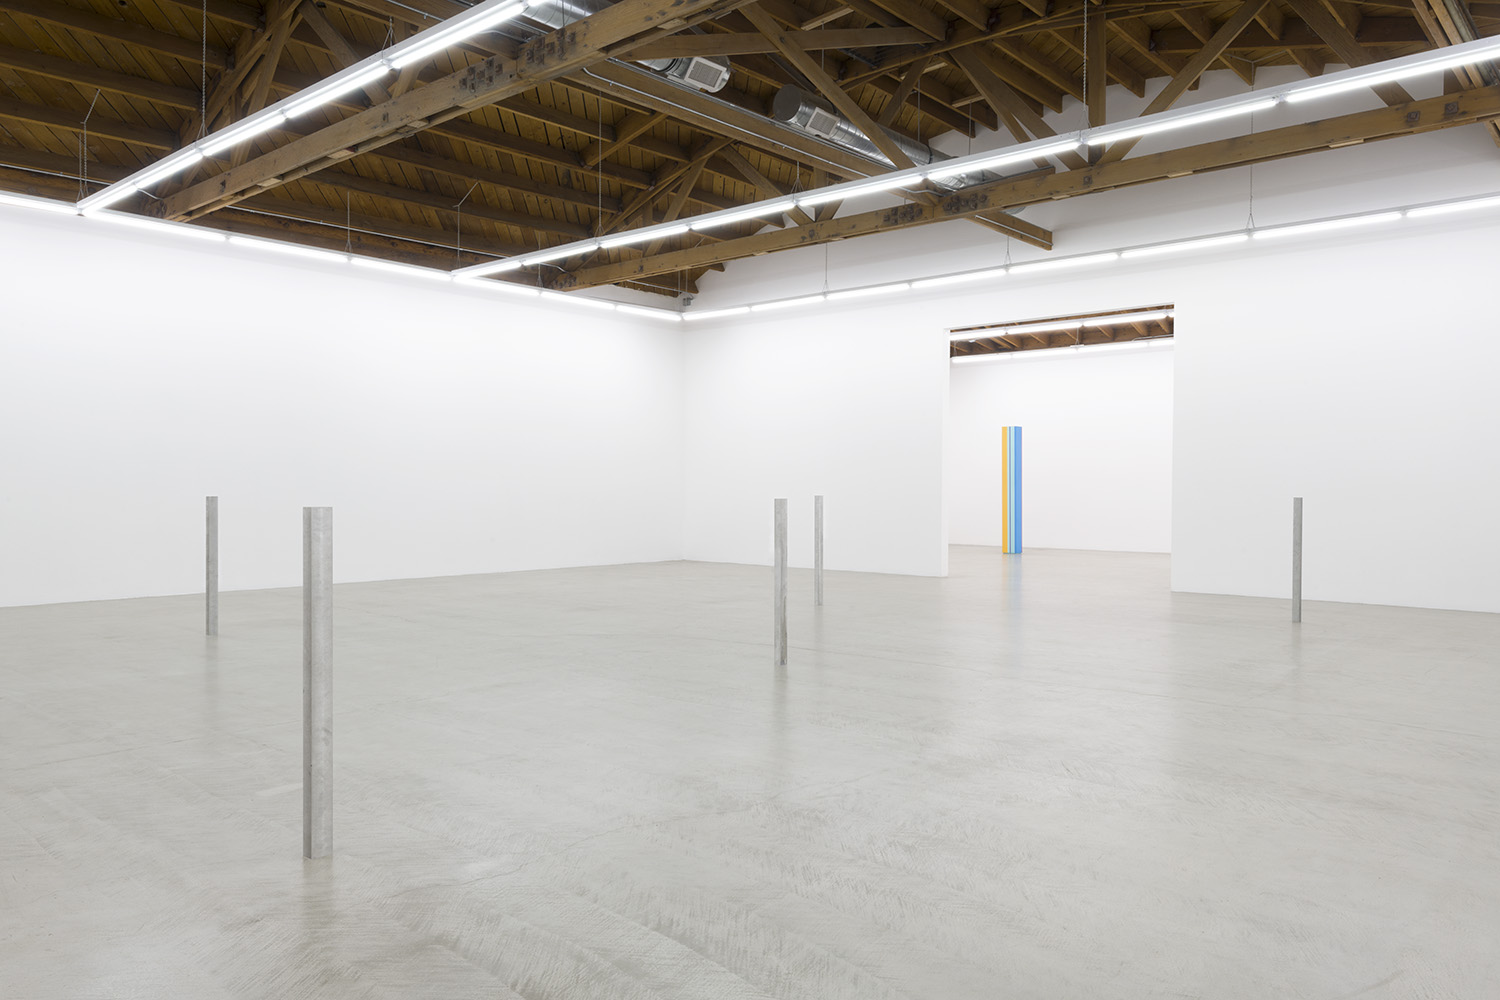 Installation image of all five aluminum and steel cast sculptures standing erect methodically placed within the gallery, an Anne Truitt is also visible in the back